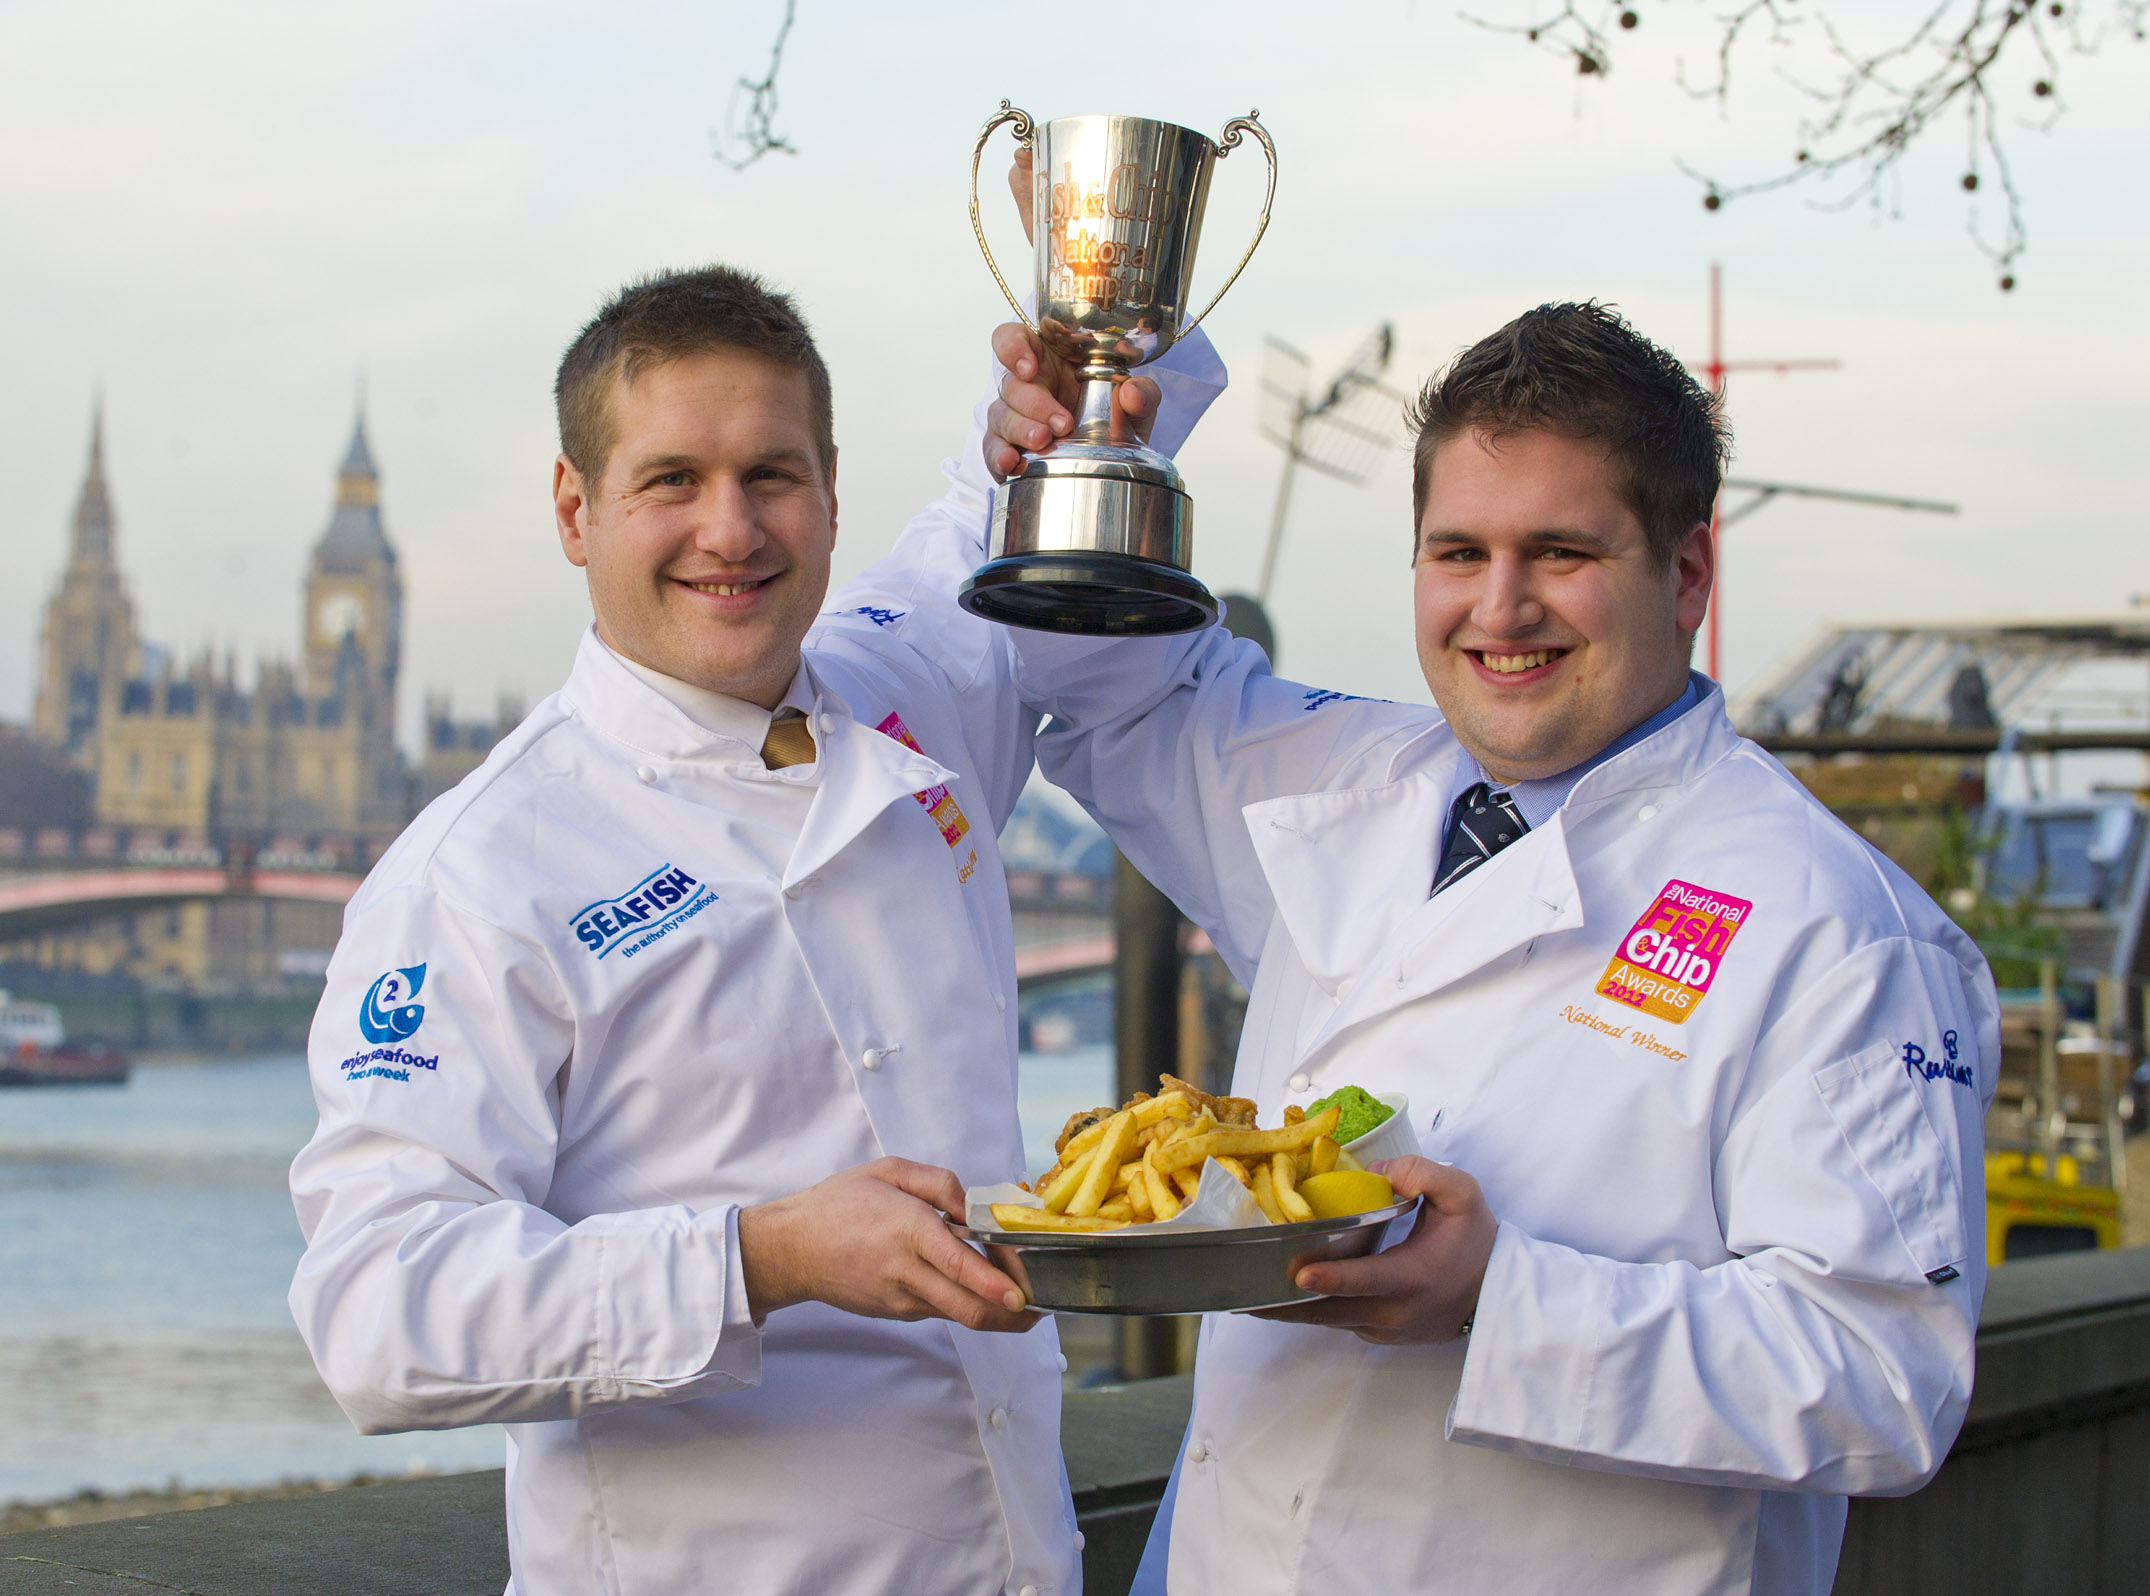 Seniors best fish and chip shop 2012 - Brit_fish_and_Chip_shop_winners_Seafare.jpg